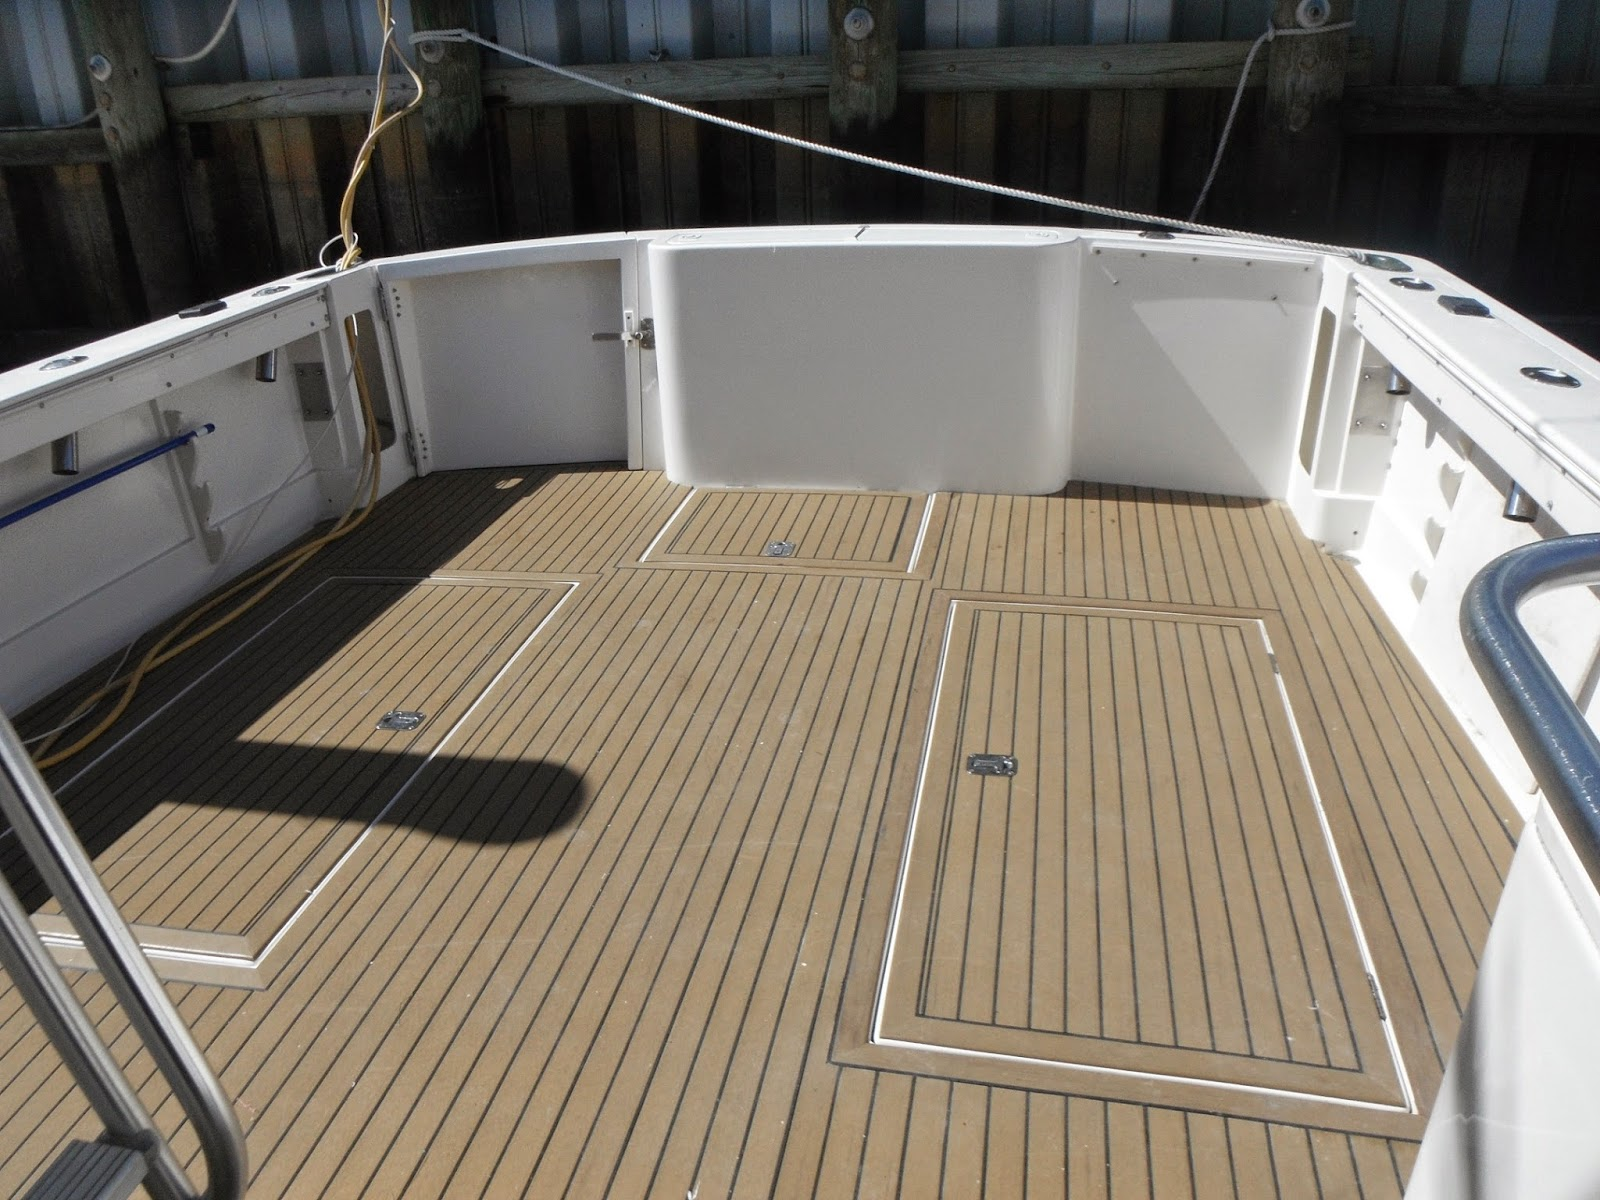 adhesive vinyl my of design about couple image in questions nautolex replacement marine boat installation floor plush flooring